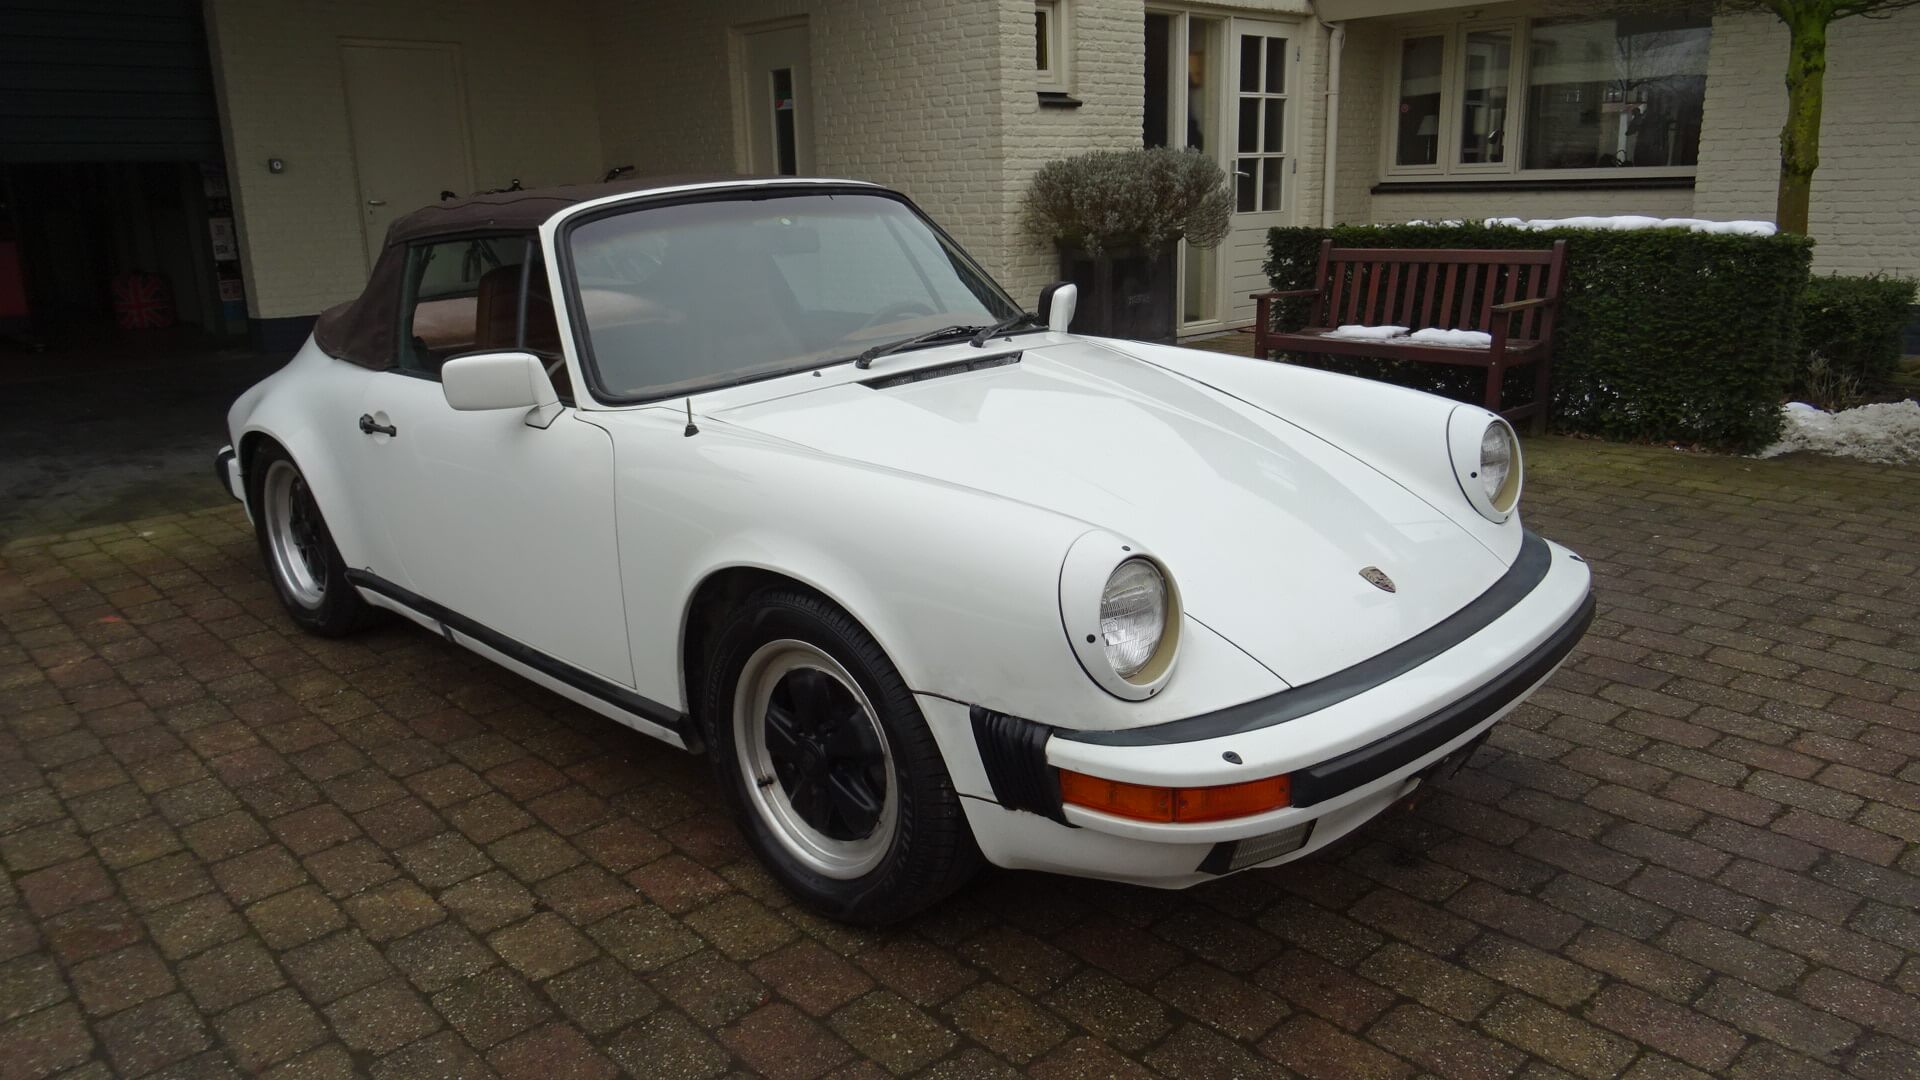 Vintage Vw Parts >> '84 Porsche 911 Carrera Cabrio - Union Jack Vintage Cars